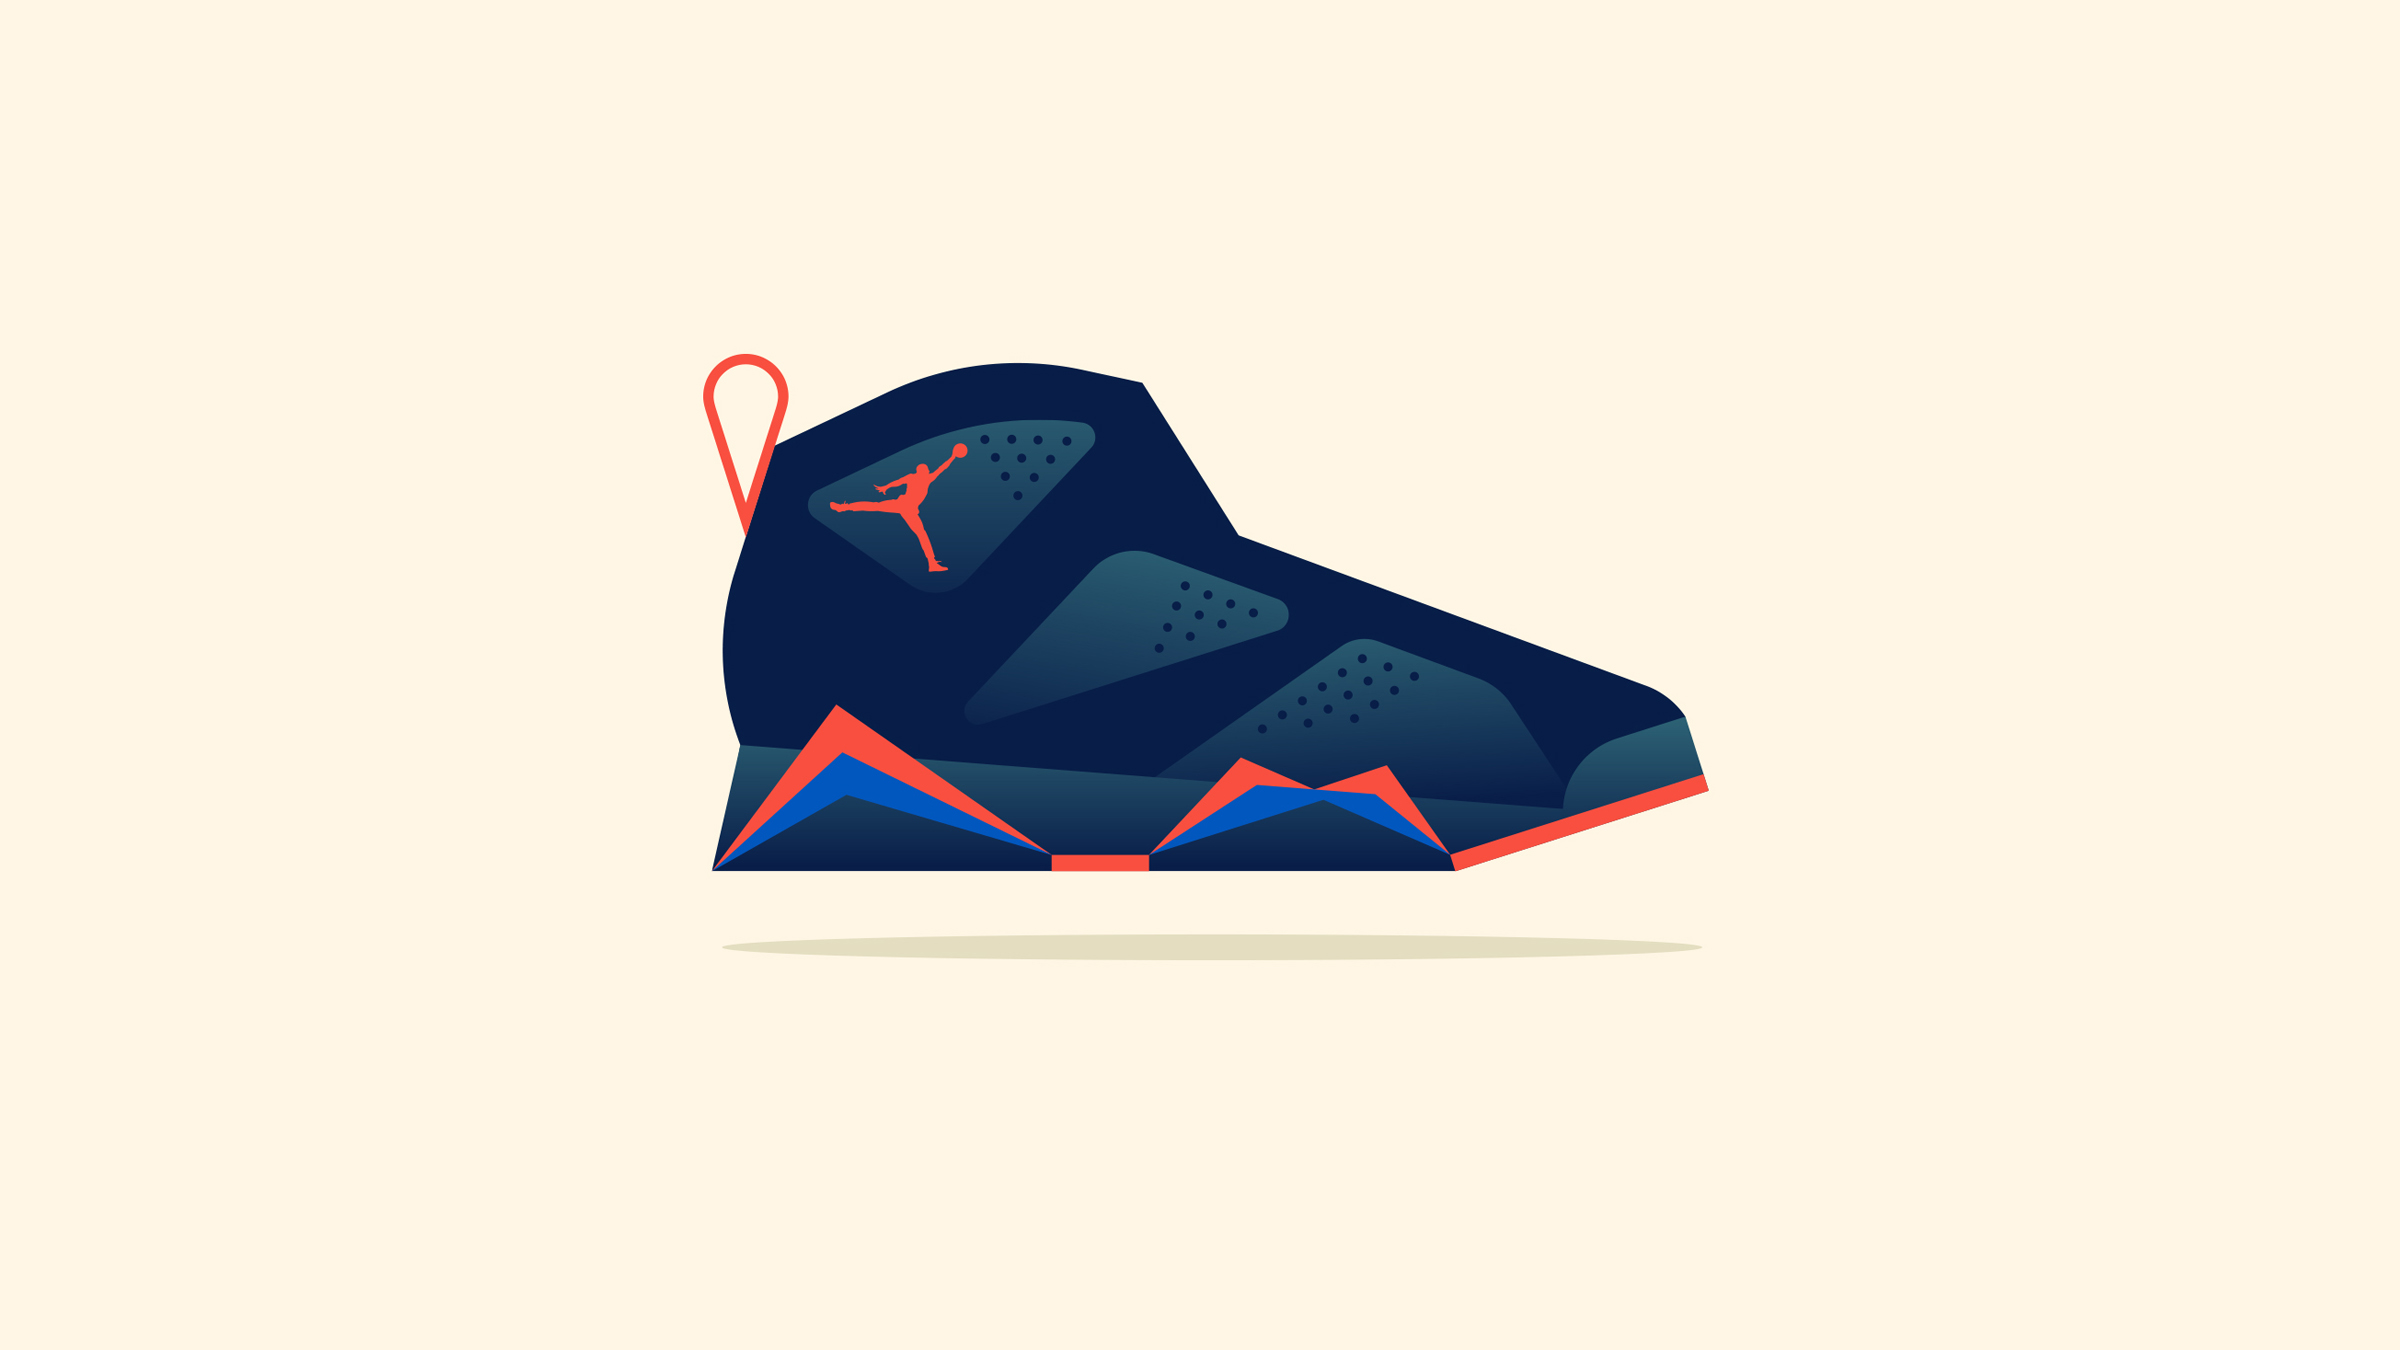 Nike Air Jordan Illustration